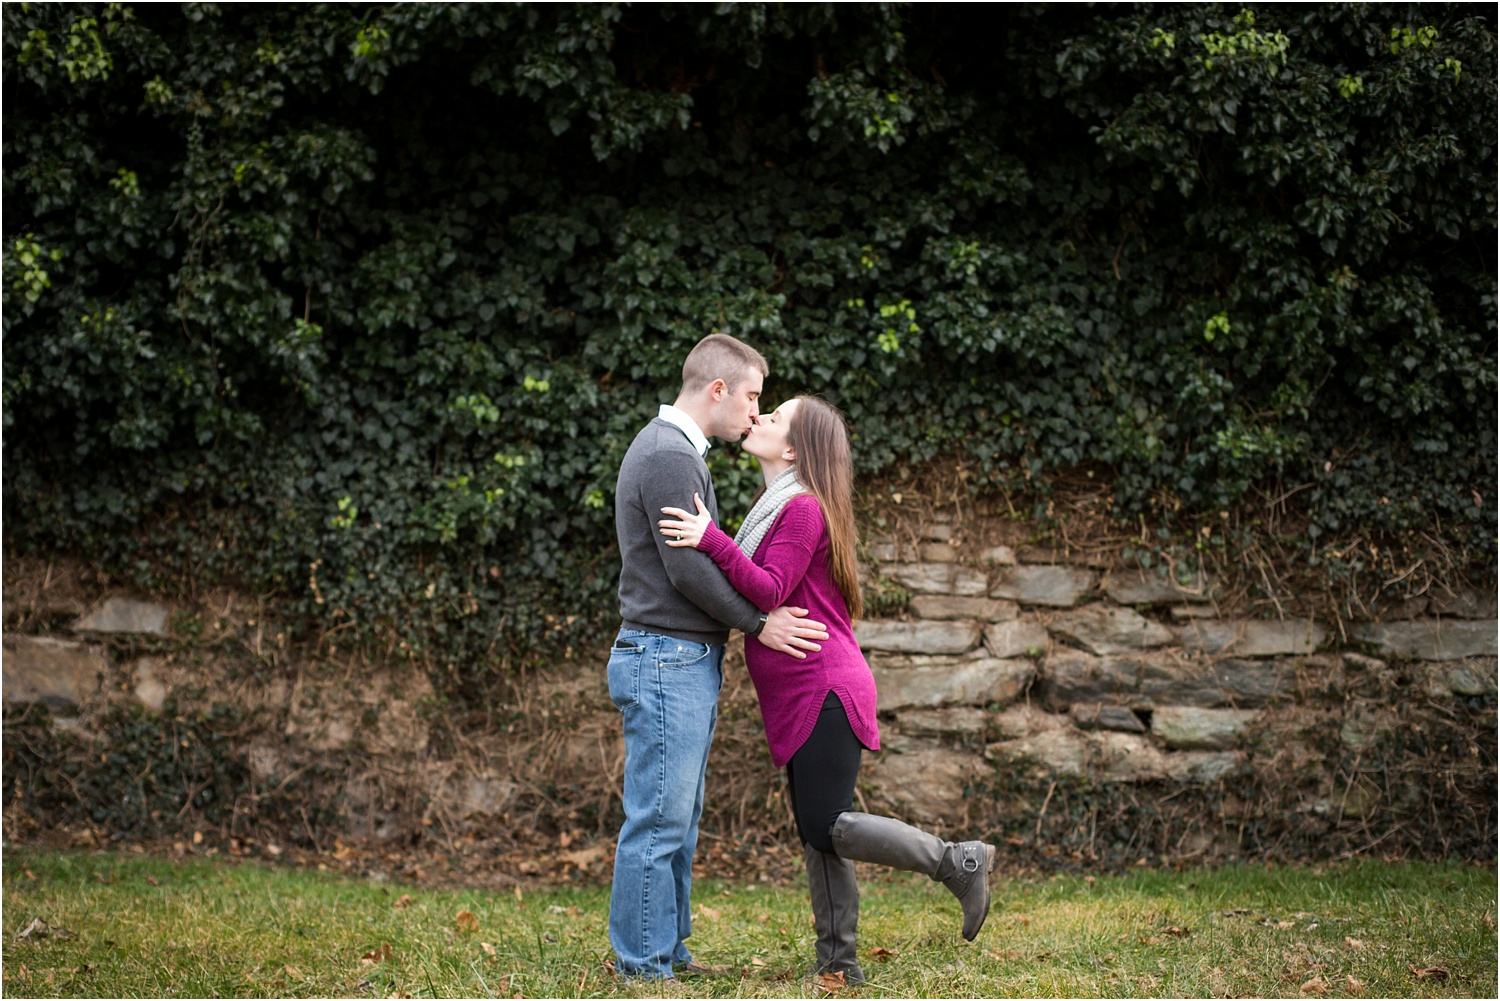 Kuklis_Harrisonburg_Va_Family_Photography_0012.jpg